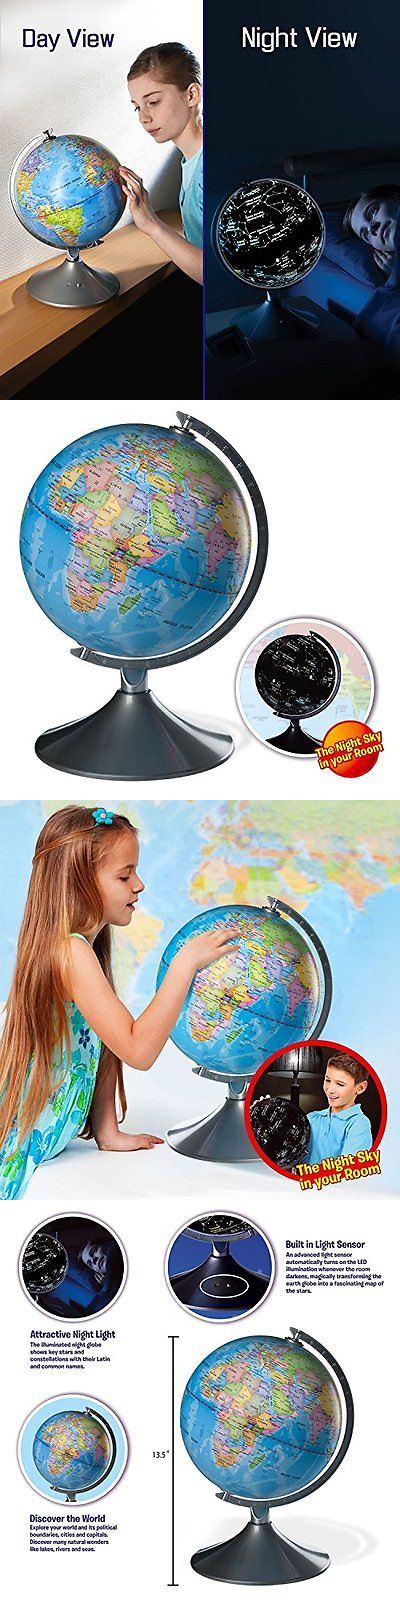 Geography and history 11733 interactive globe for kids 2 in 1 day geography and history 11733 interactive globe for kids 2 in 1 day view gumiabroncs Image collections